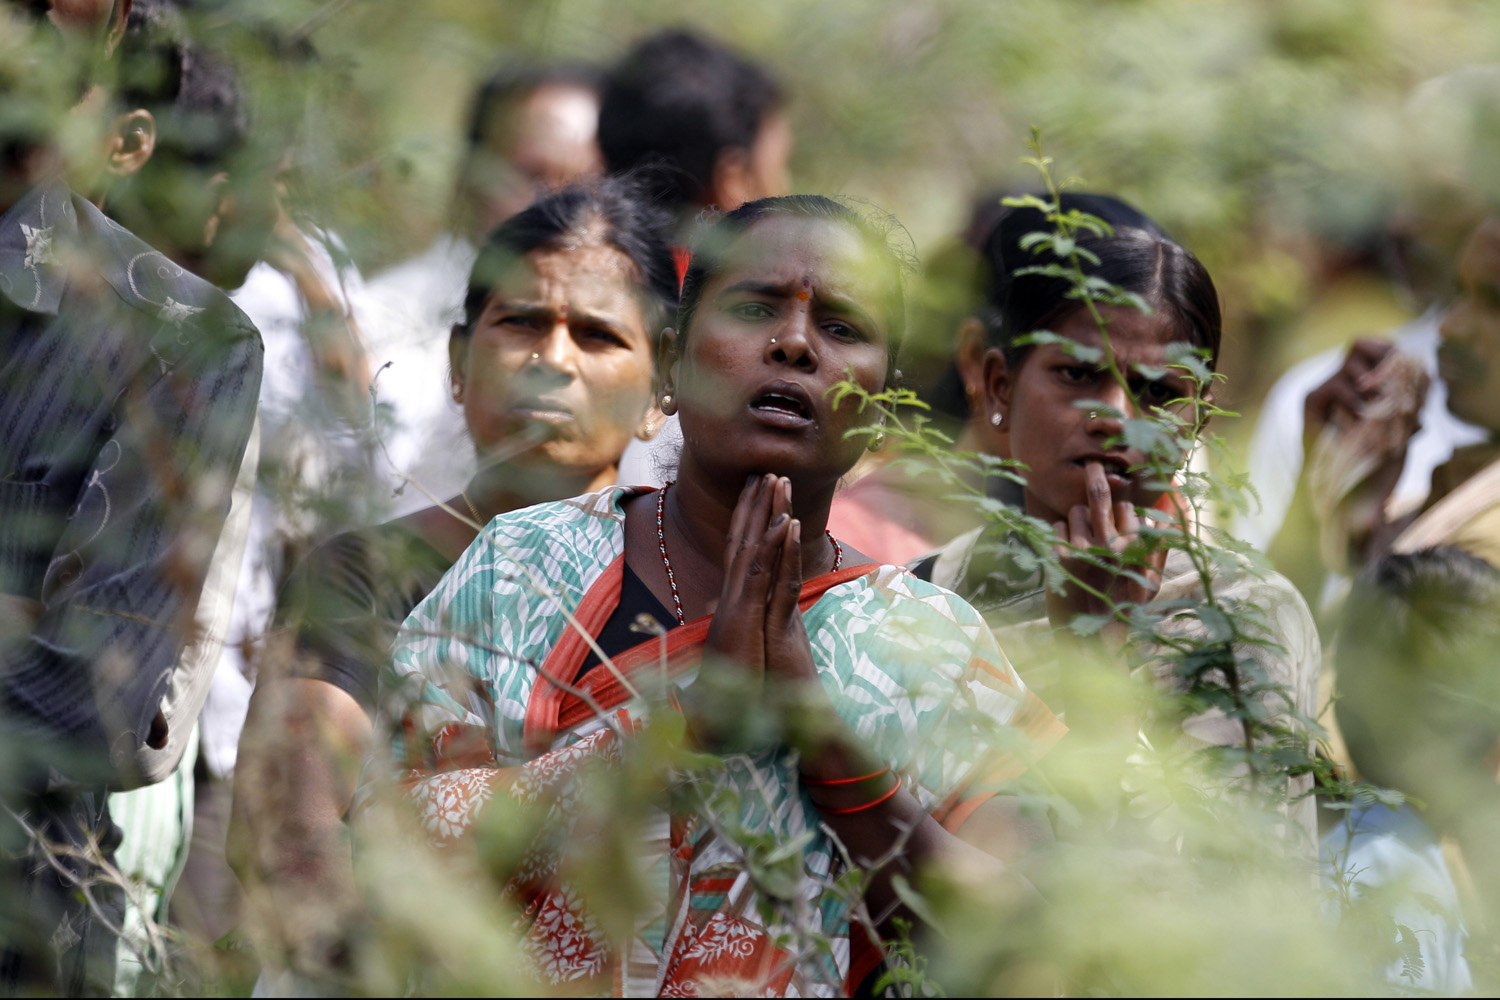 Dec. 28, 2013. An Indian woman watches with folded hands as hospital staff and volunteers carry charred bodies of passengers near the site of a train accident at Kothacheruvu, about 155 kilometers (96 miles) north of Bangalore, India.